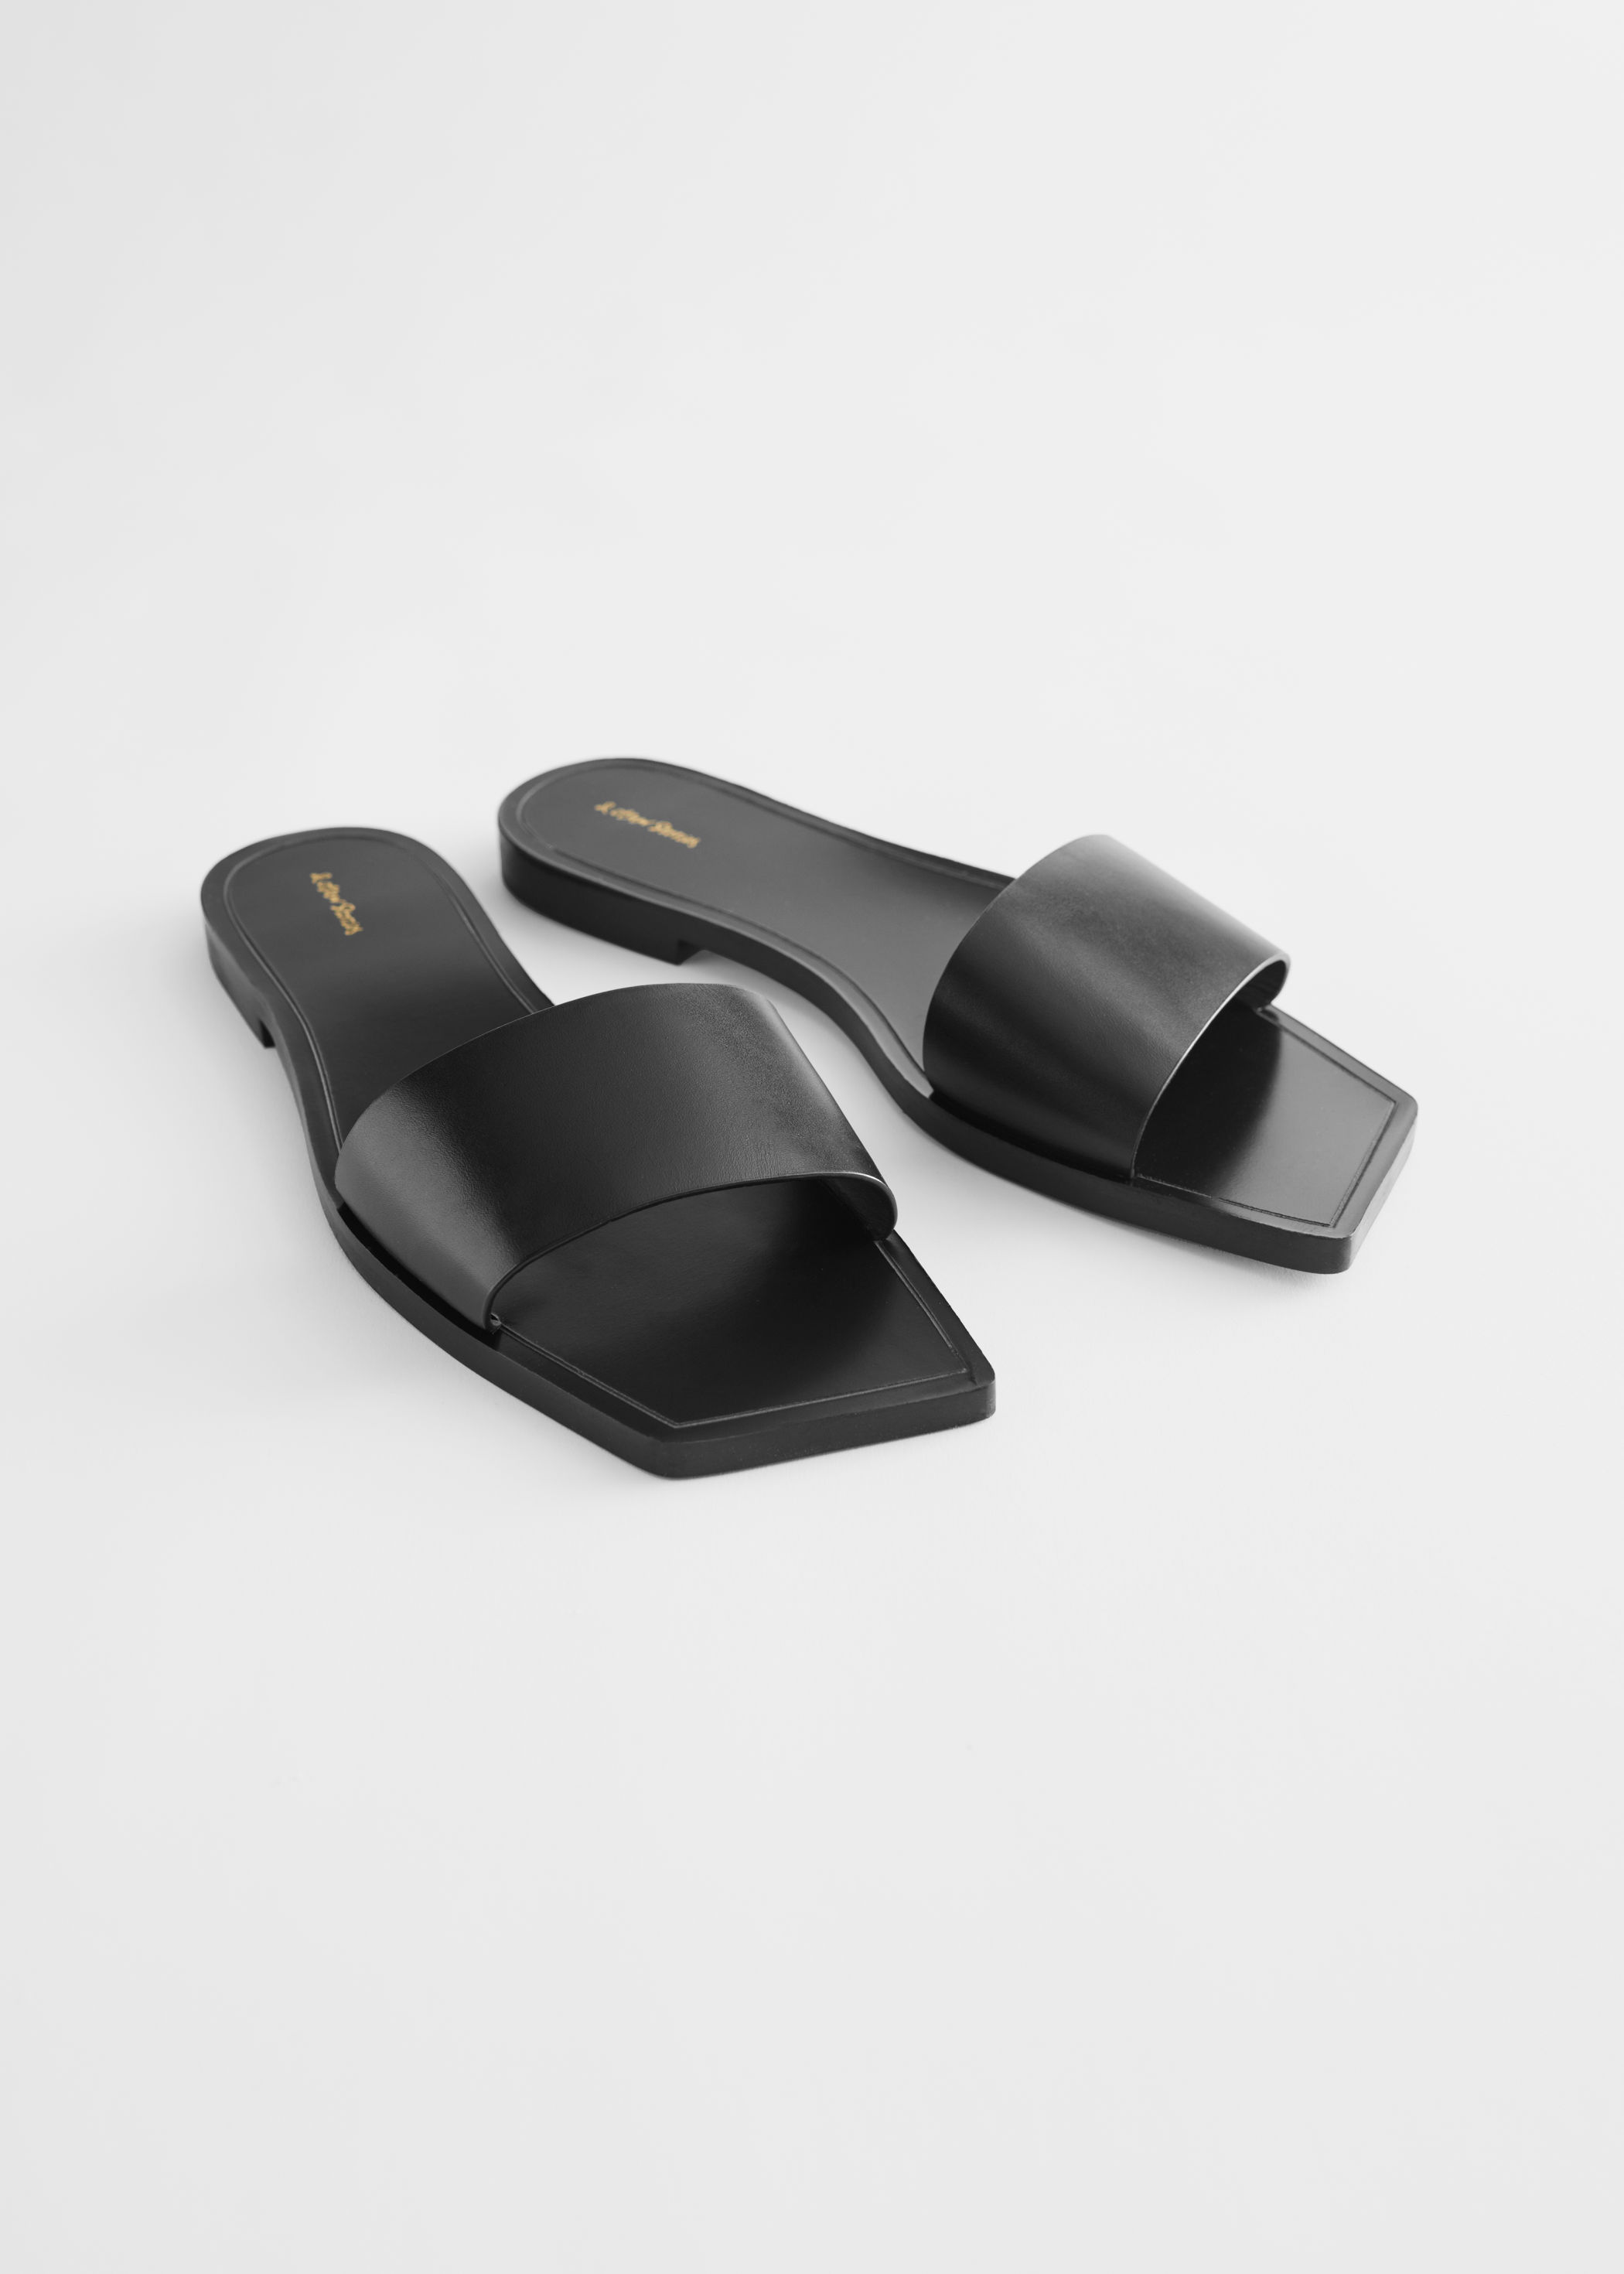 & other stories  Leather Square Toe Slip On Sandals